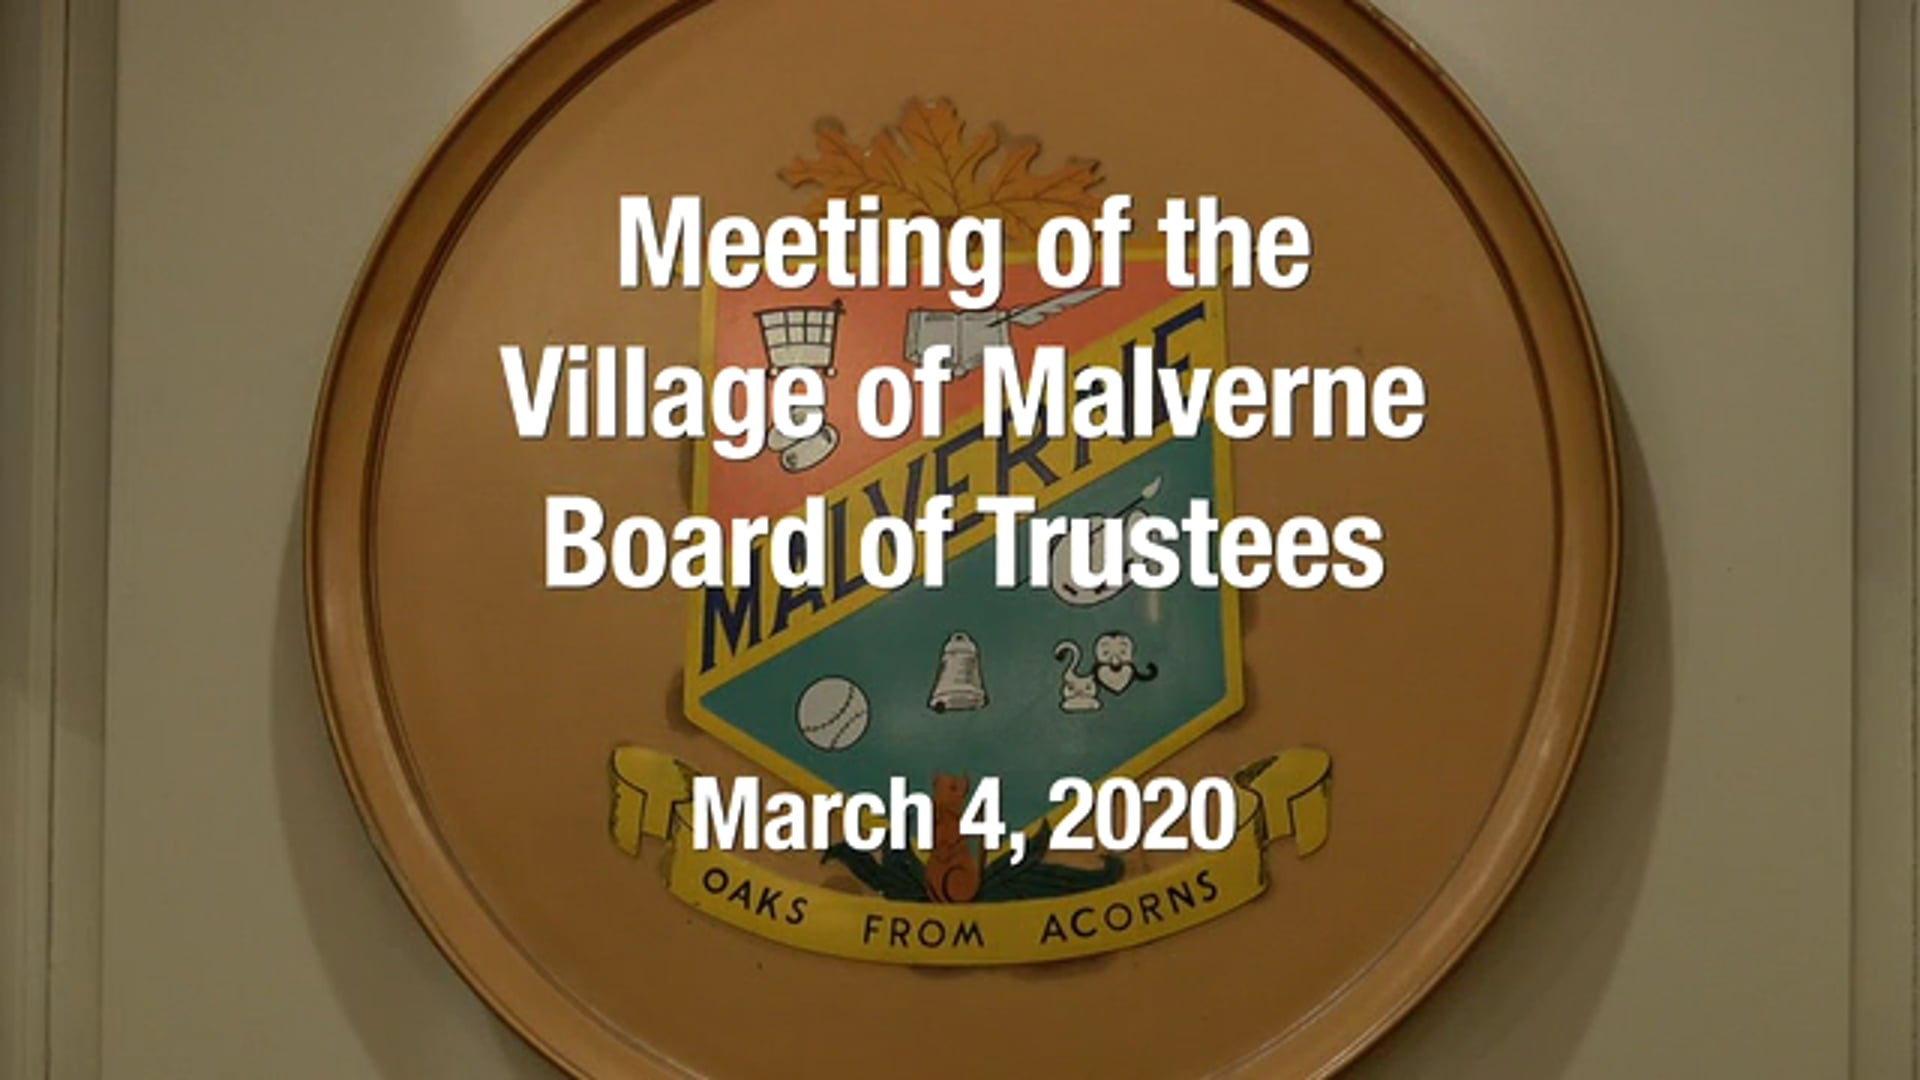 Village of Malverne Meeting of the Board of Trustees, March 2020